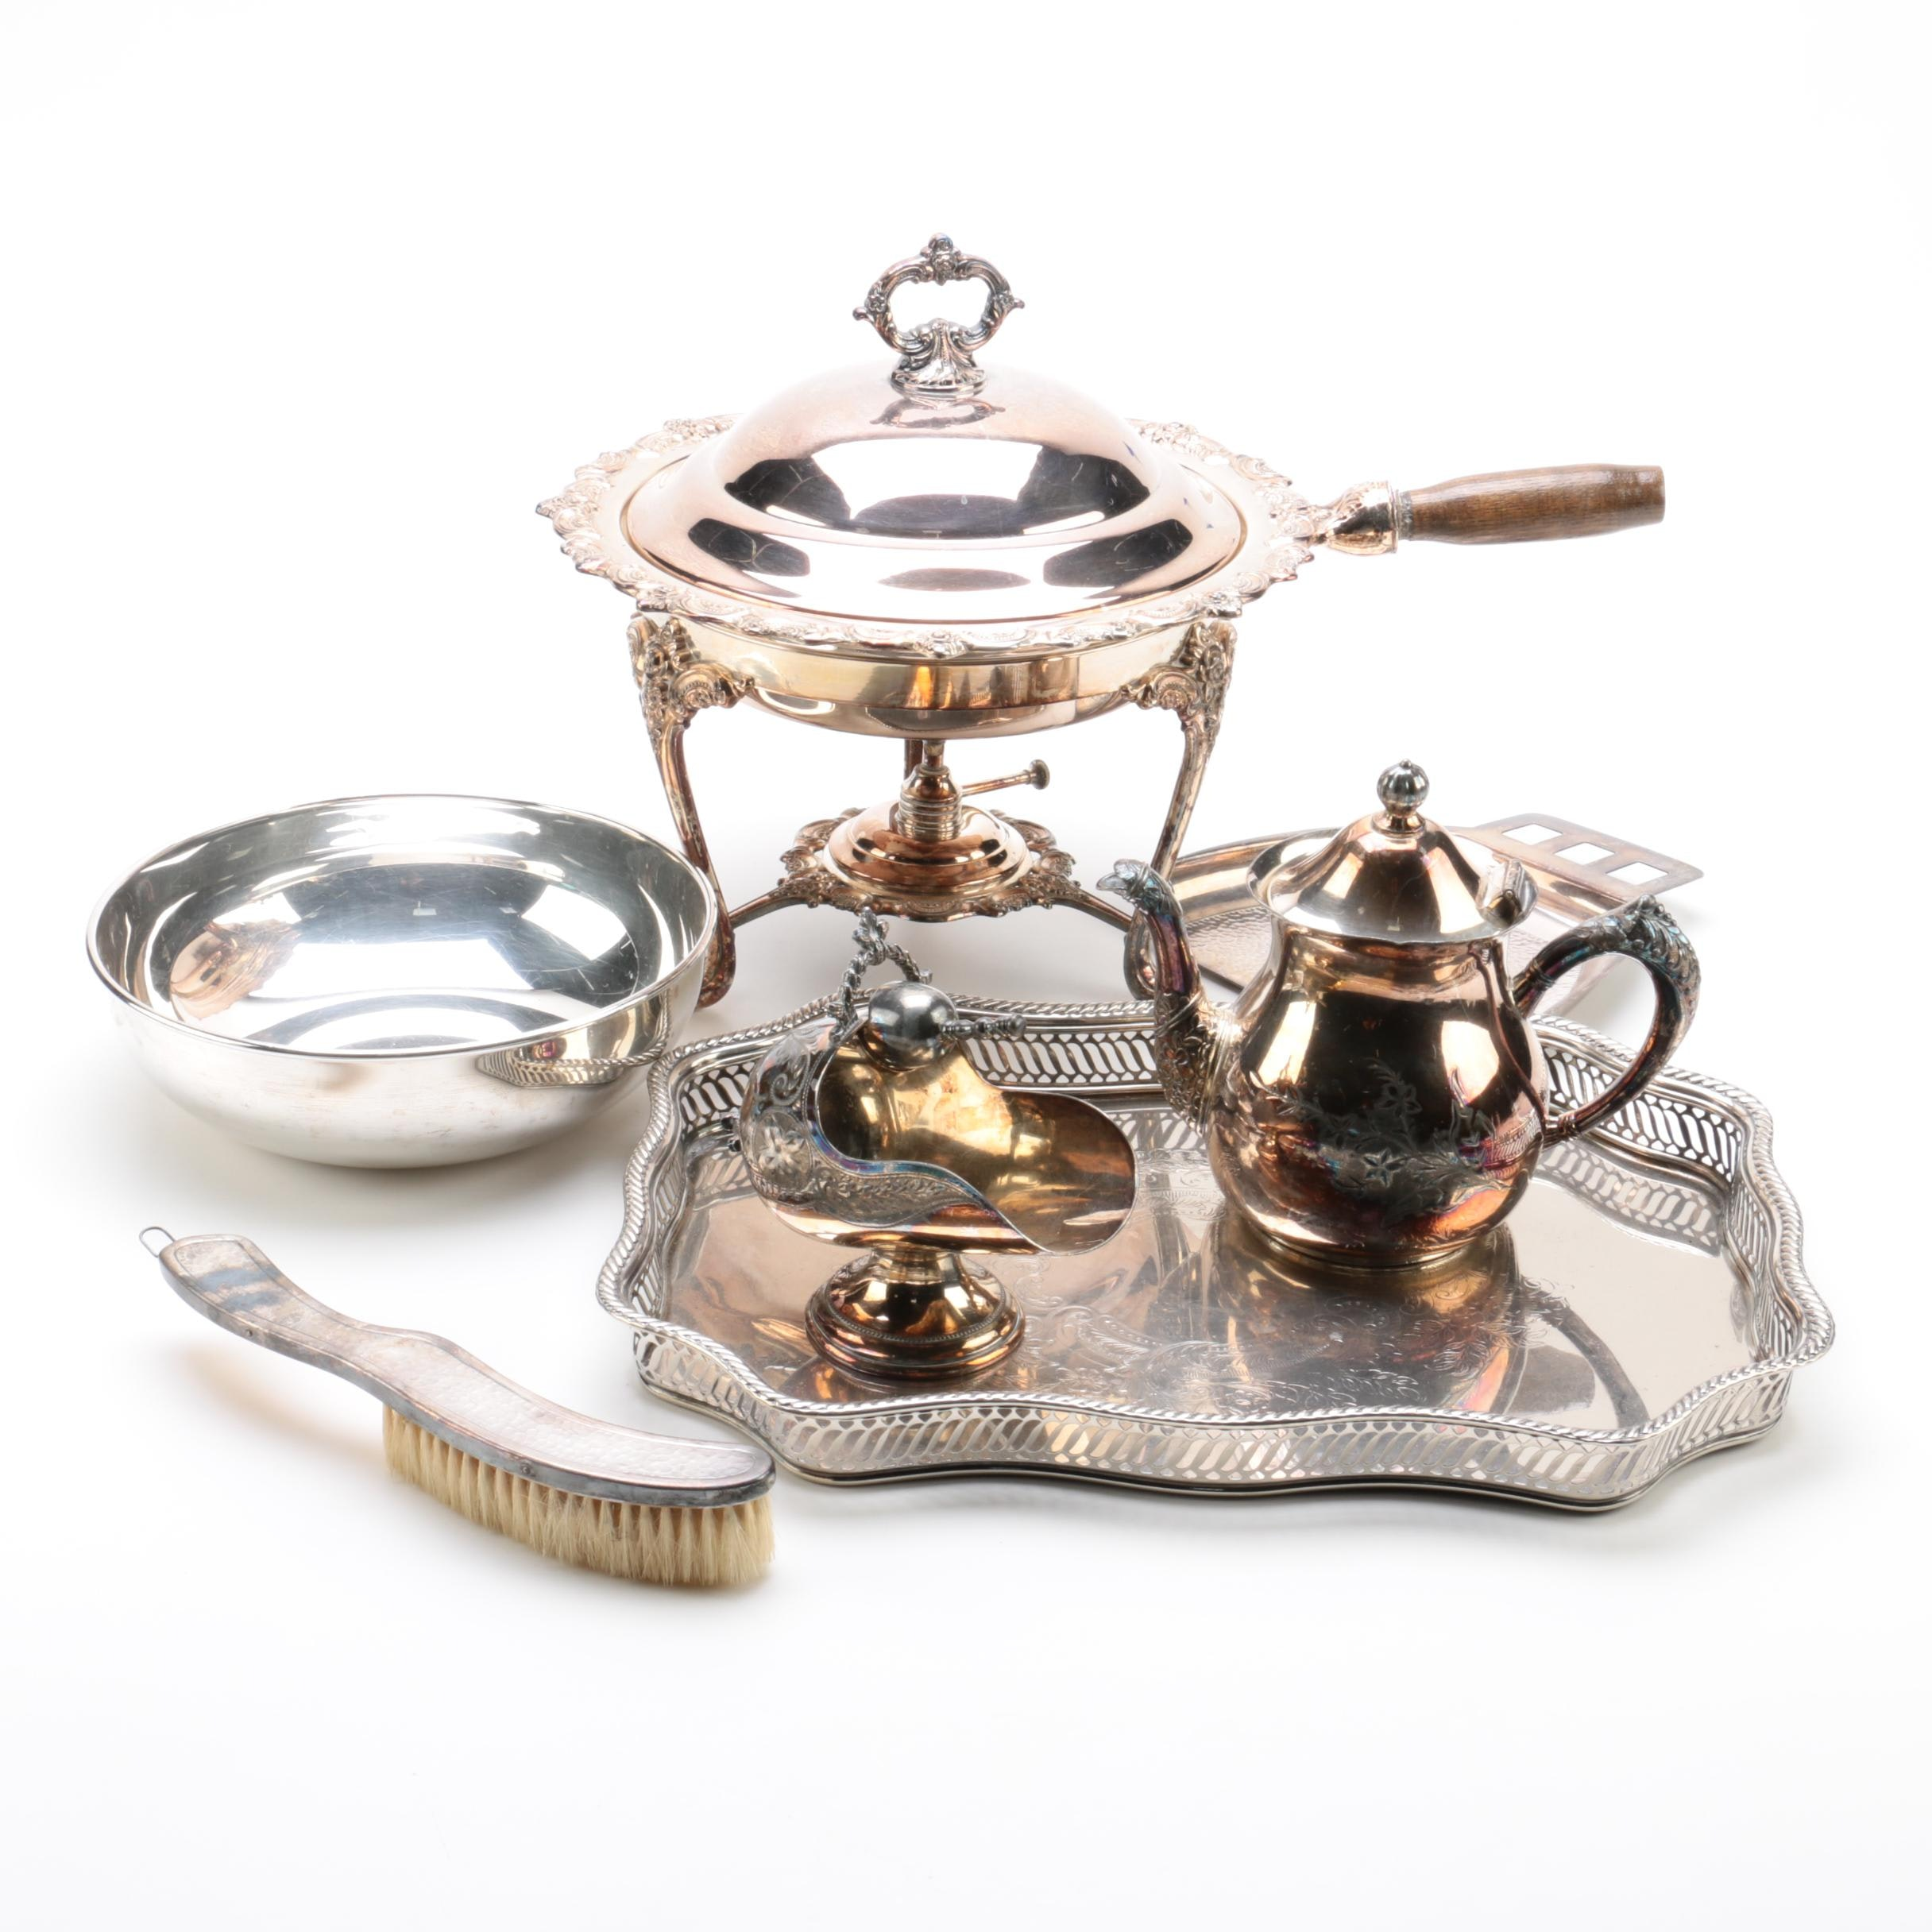 Warren Silver Plate Co. Silver Plate Teapot and Other Serveware